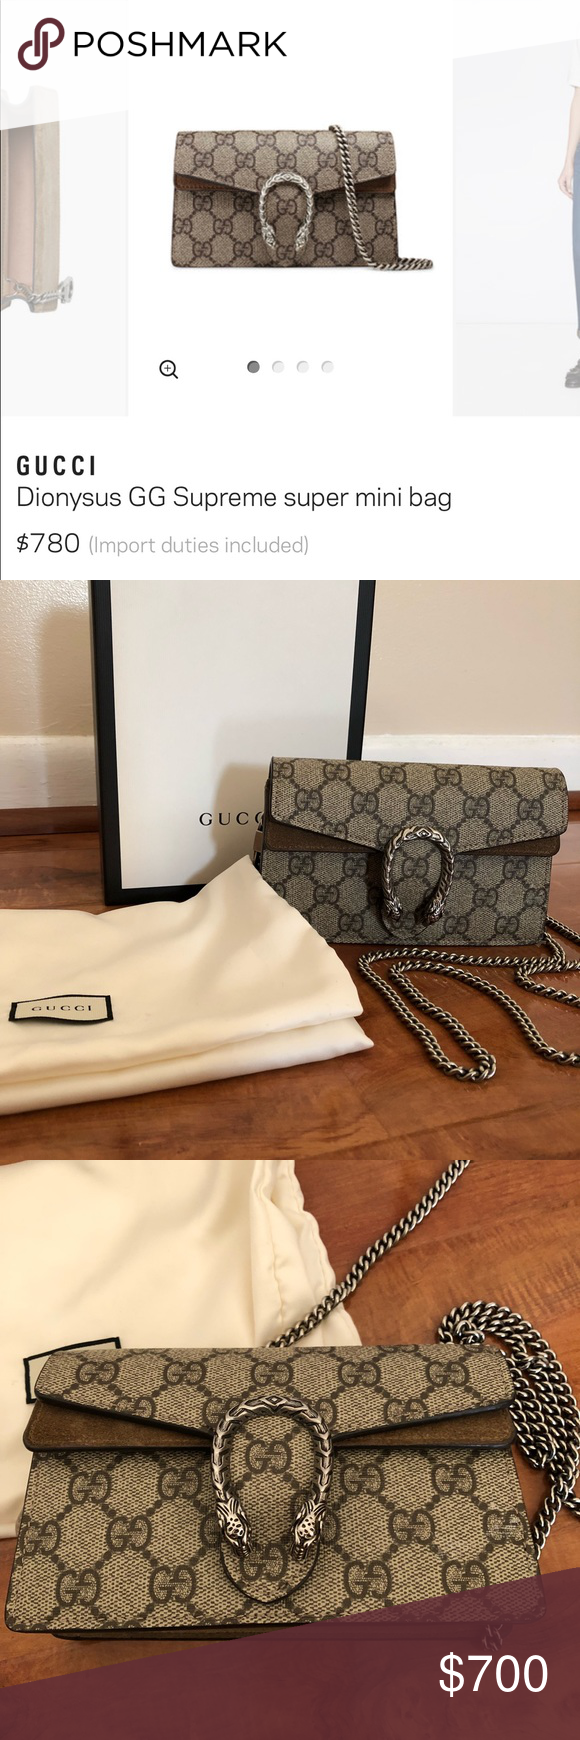 48c34bf042 Used 3x Gucci supreme super mini Bag Authentic Gucci mini Dionysus Bag.  Bought from Gucci store this summer. Used 3x. Comes with box and dustbag Gucci  Bags ...